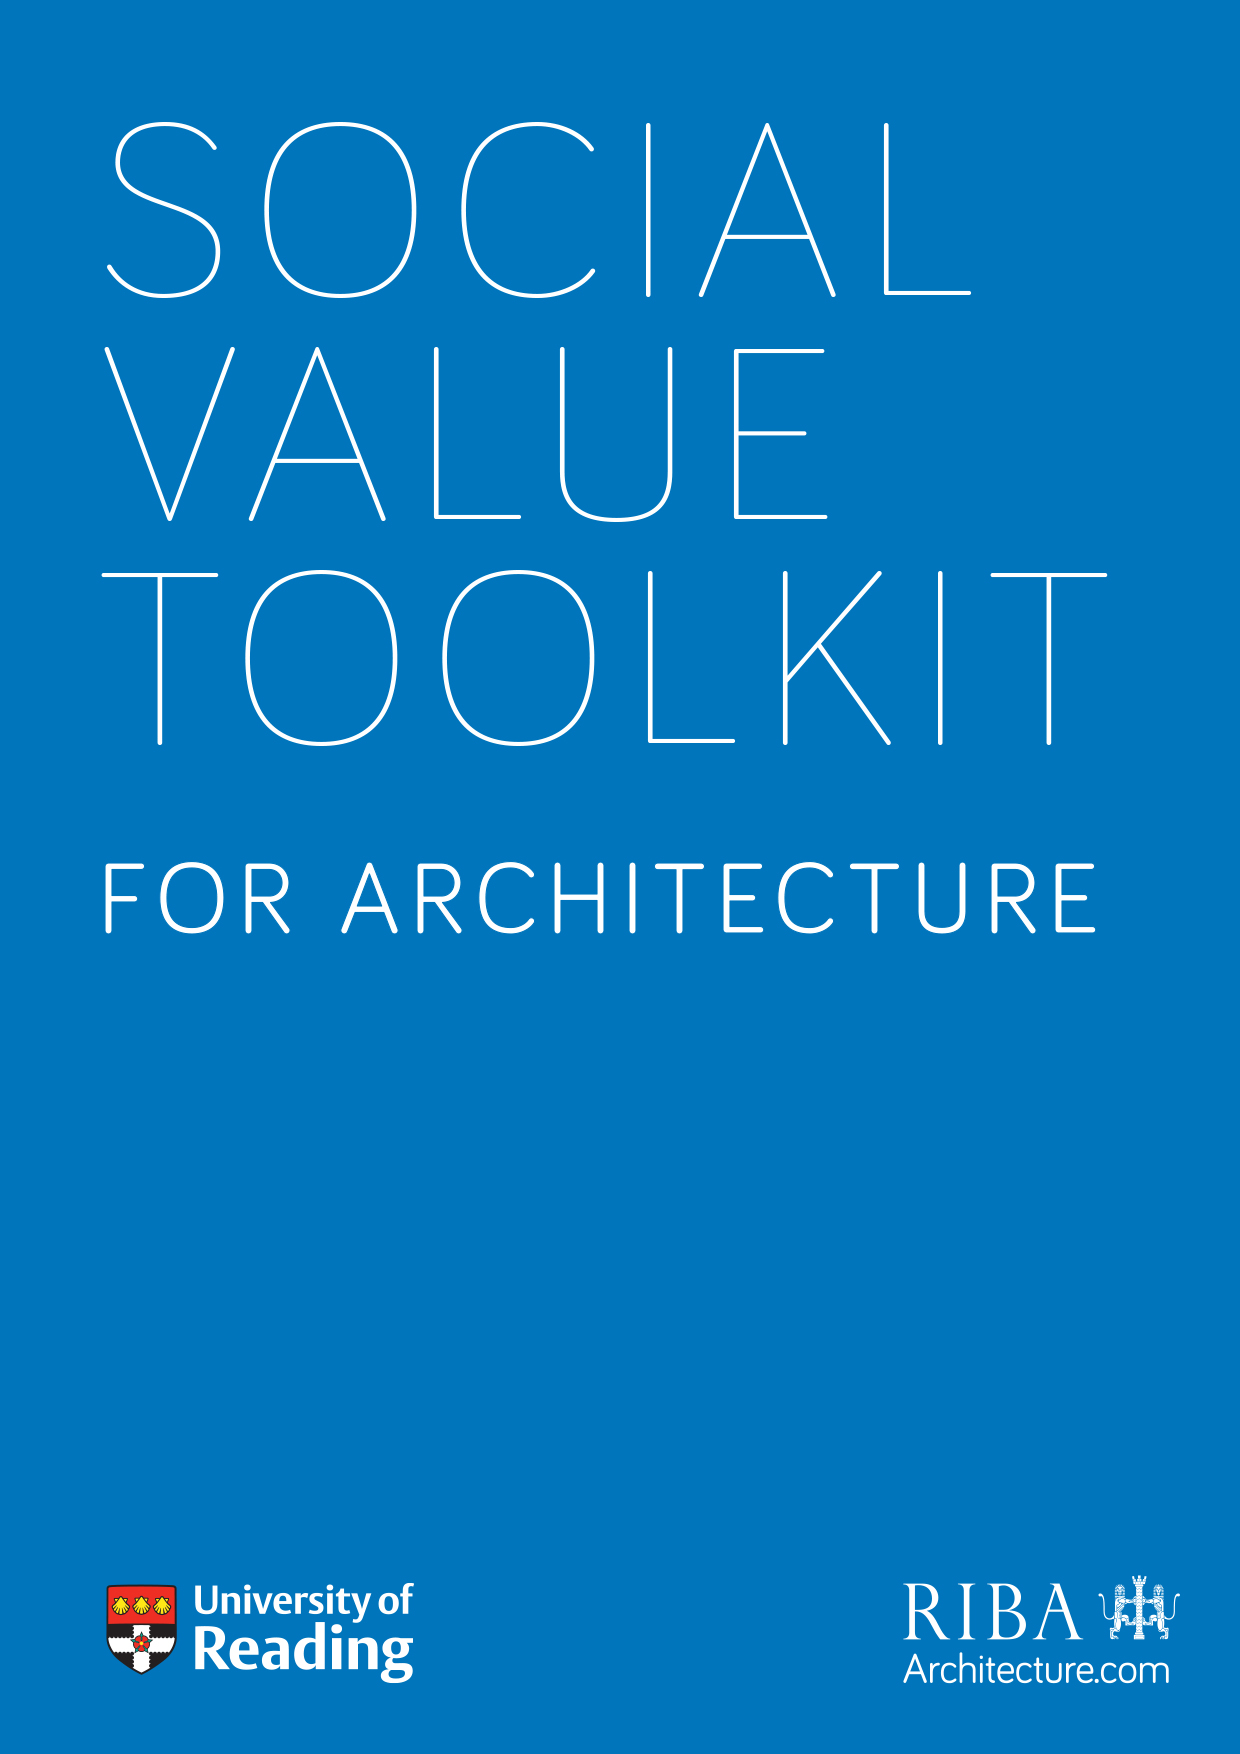 Social Value Toolkit for Architecture